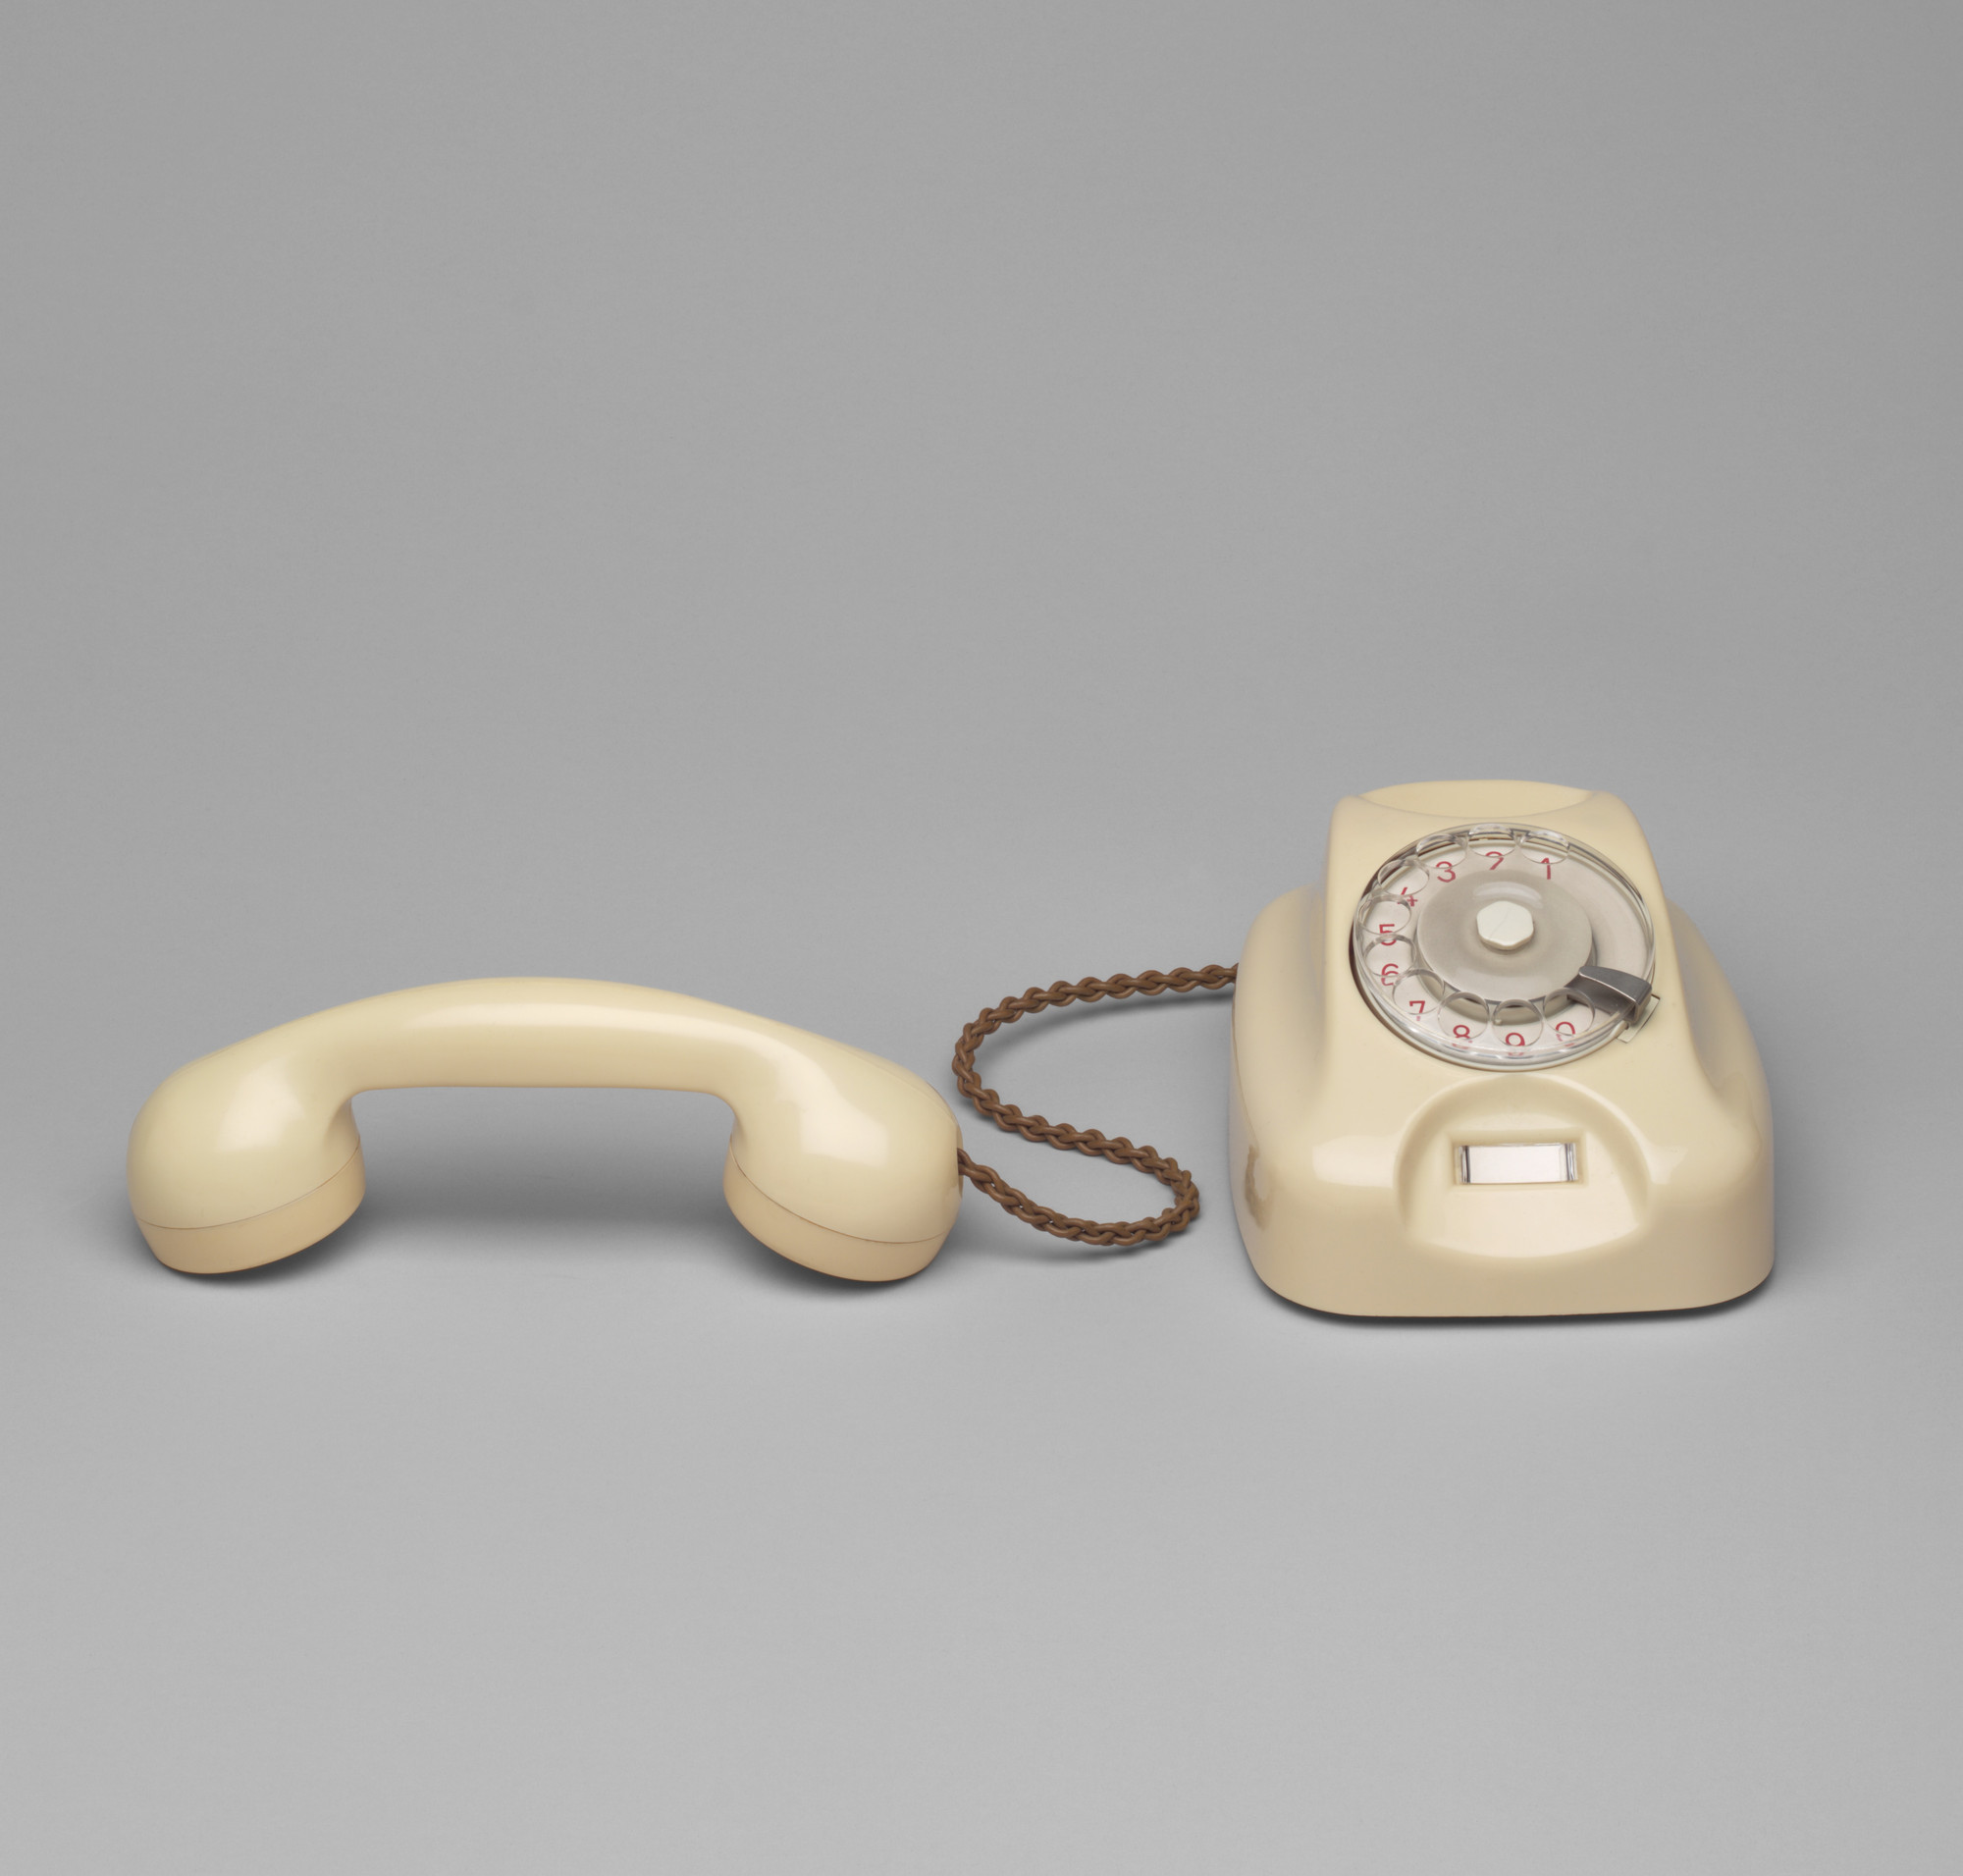 Siemens & Halske A.G., Munich, Germany. Telephone. c. 1955